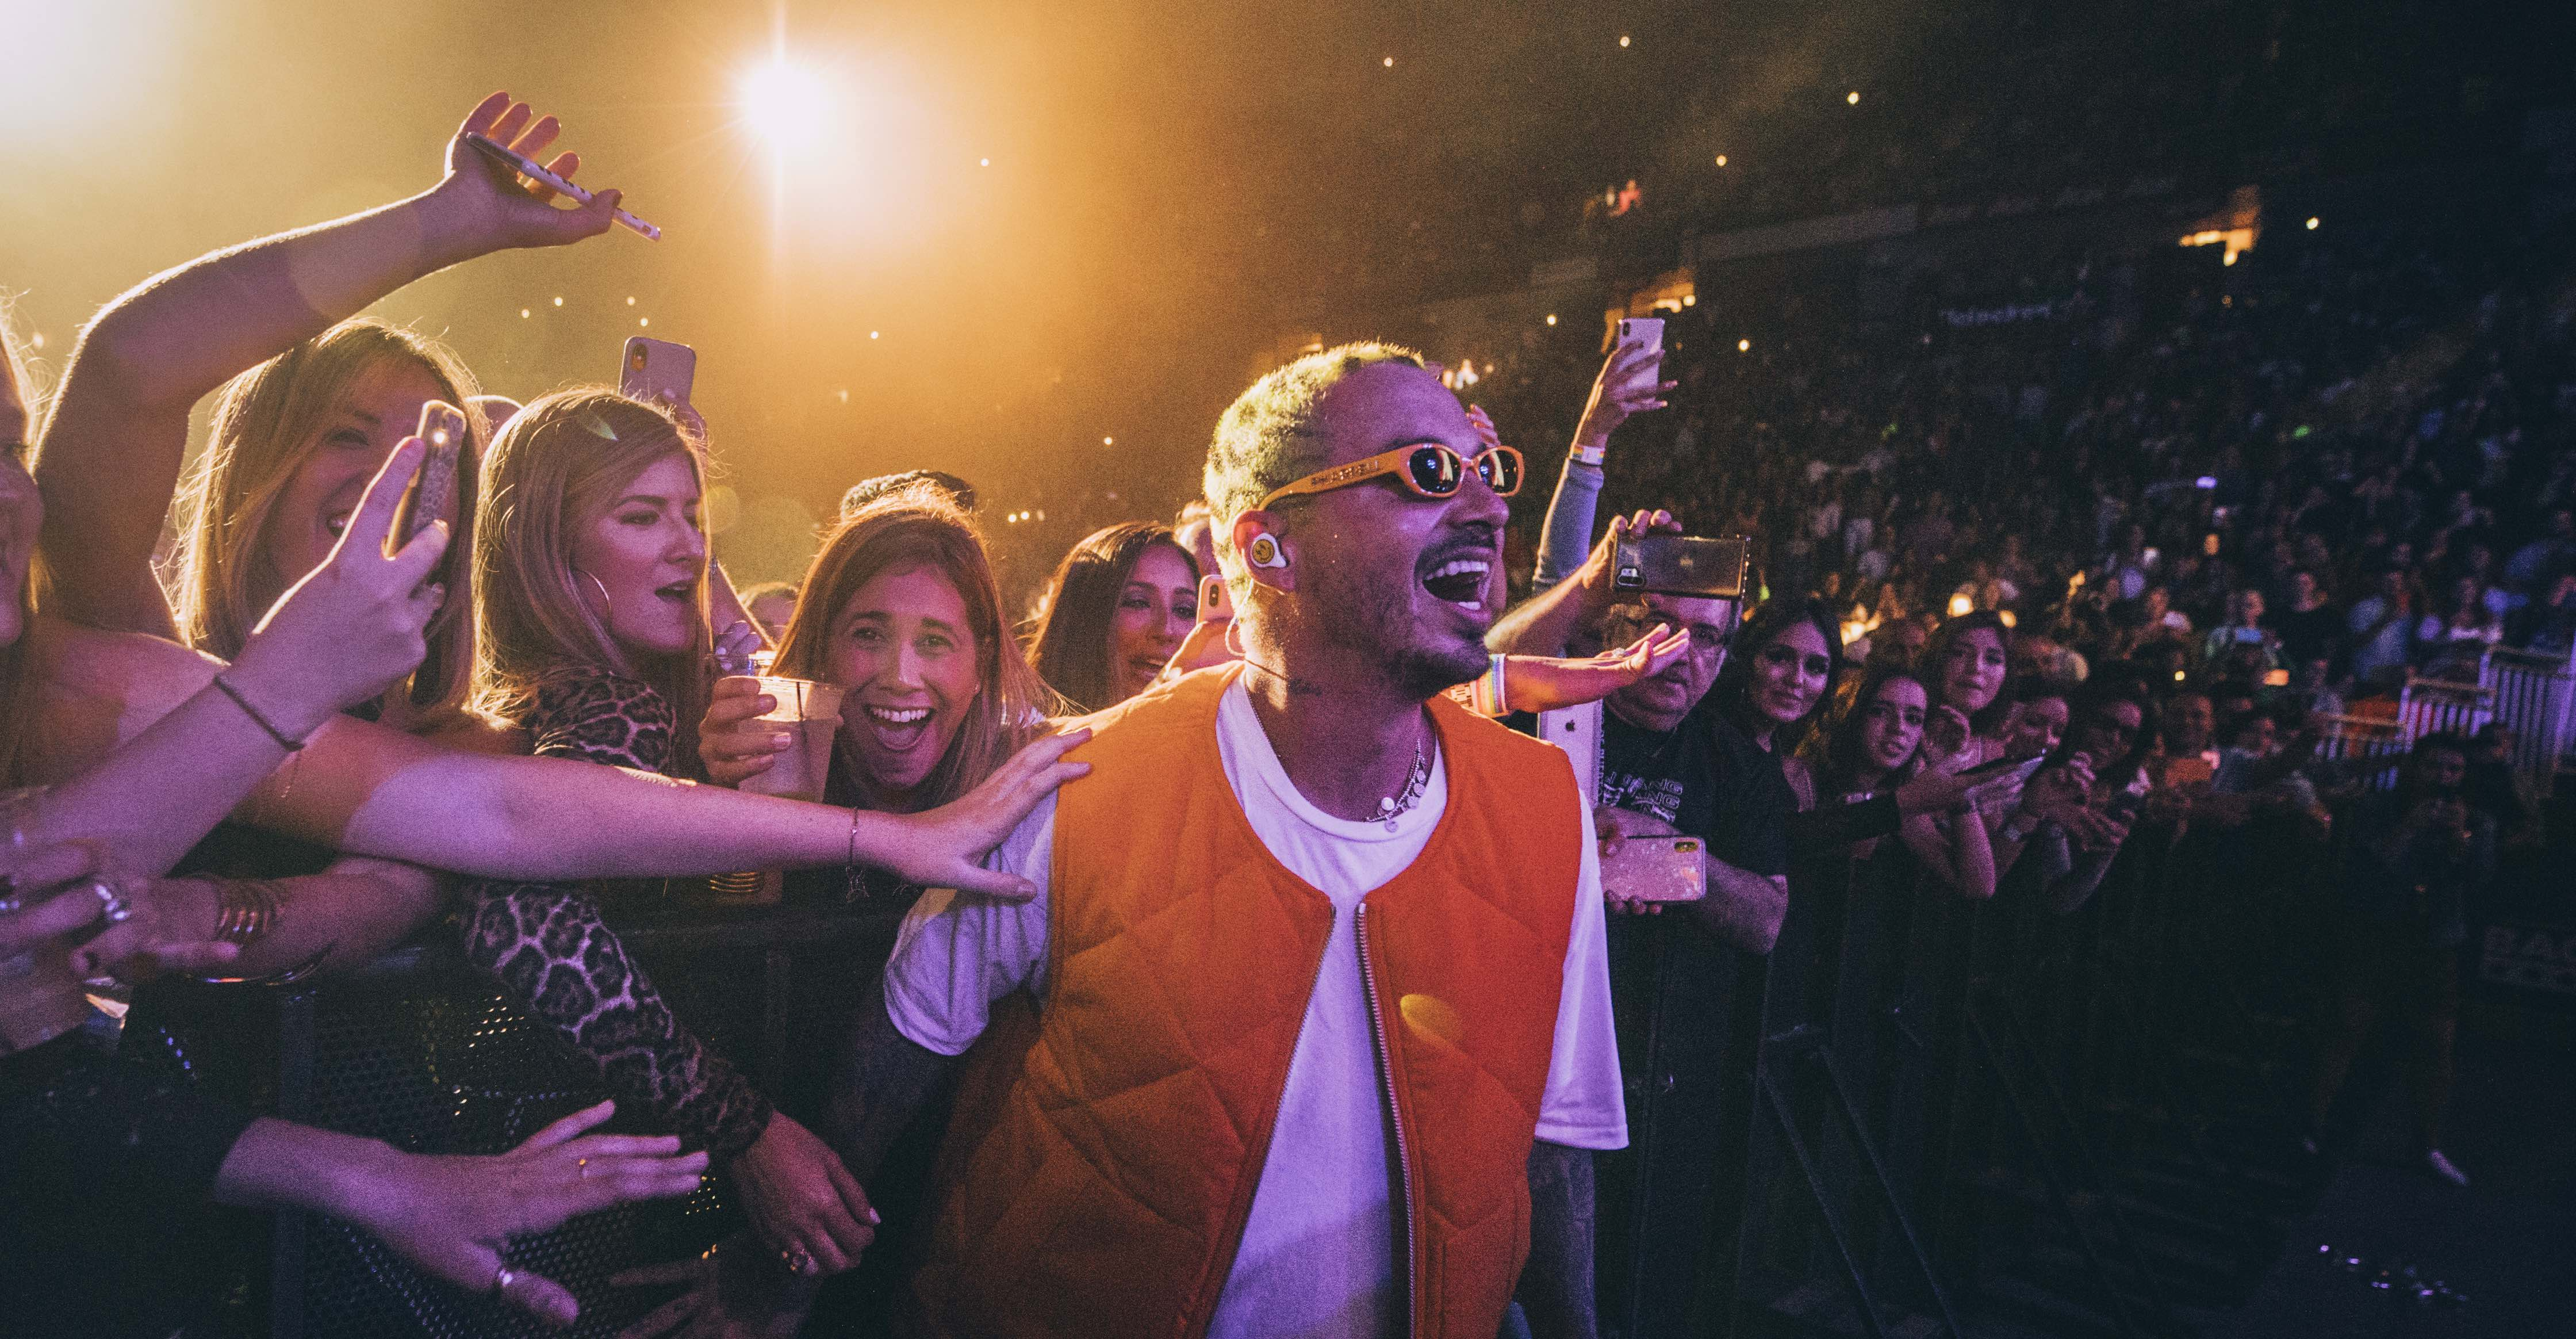 J Balvin Breaks Records in Puerto Rico With His Stunning 'Arcoiris' Tour